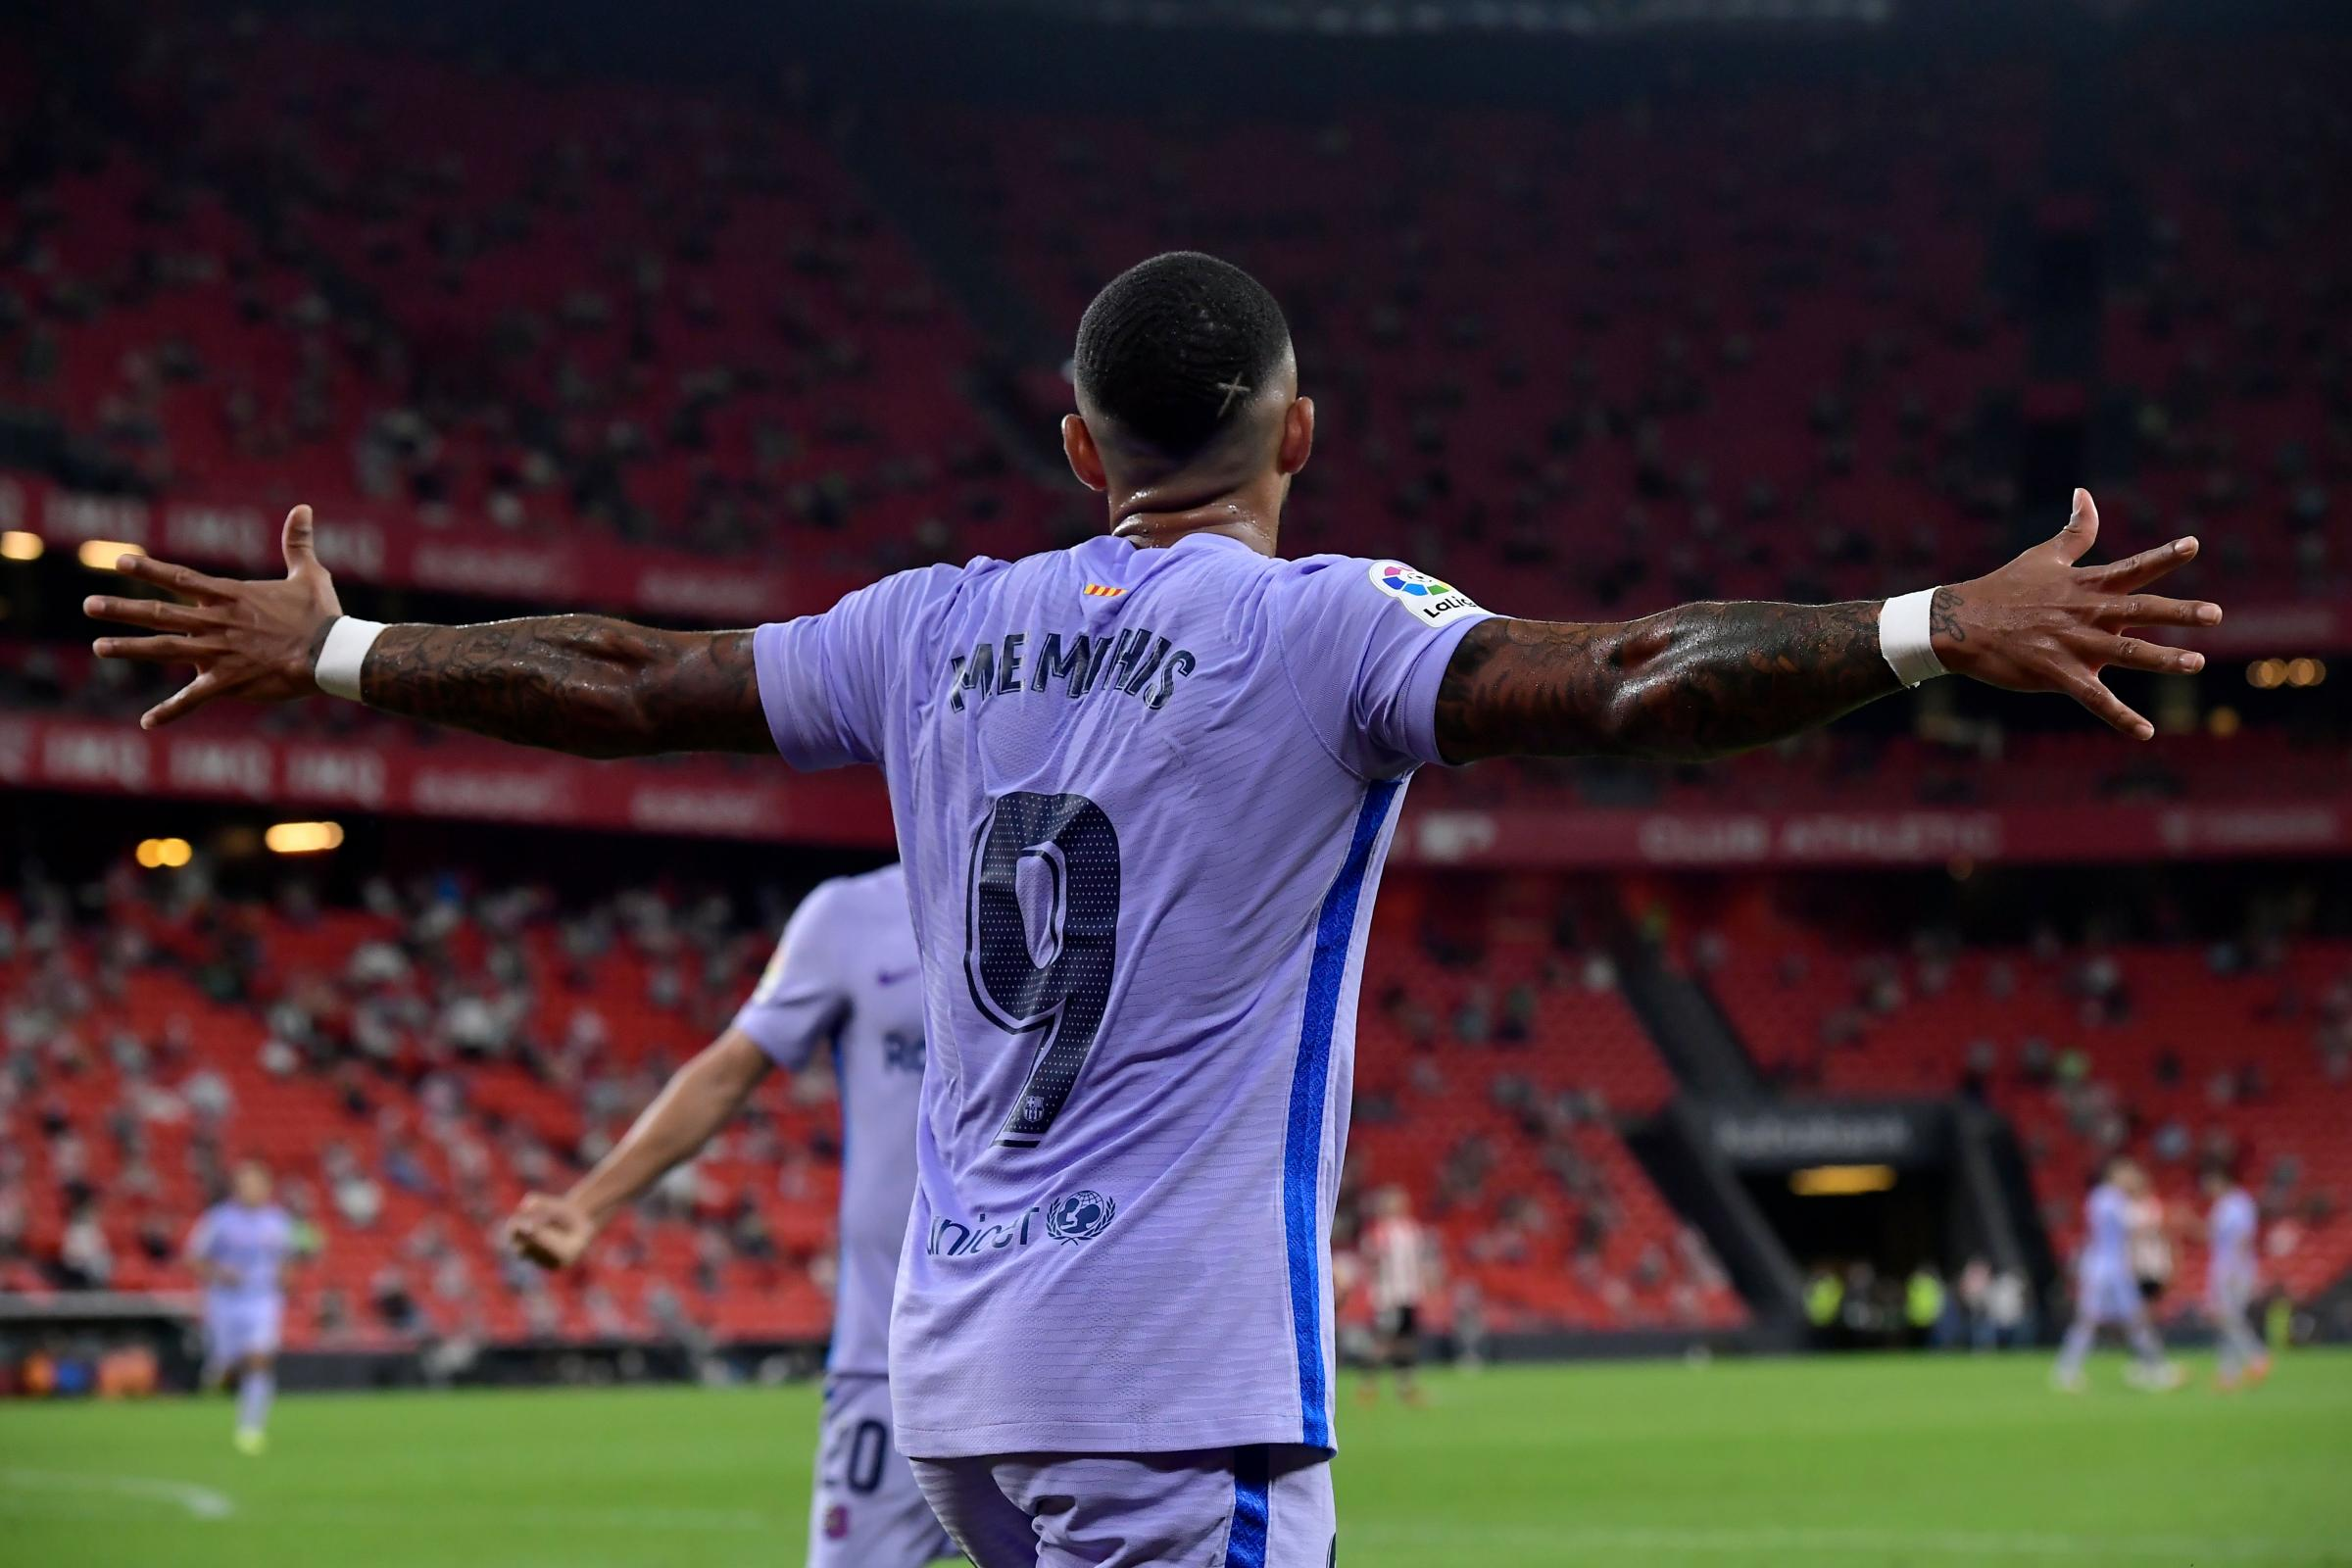 Memphis Depay heading in the right direction as Barcelona snatch draw at Athletic Bilbao